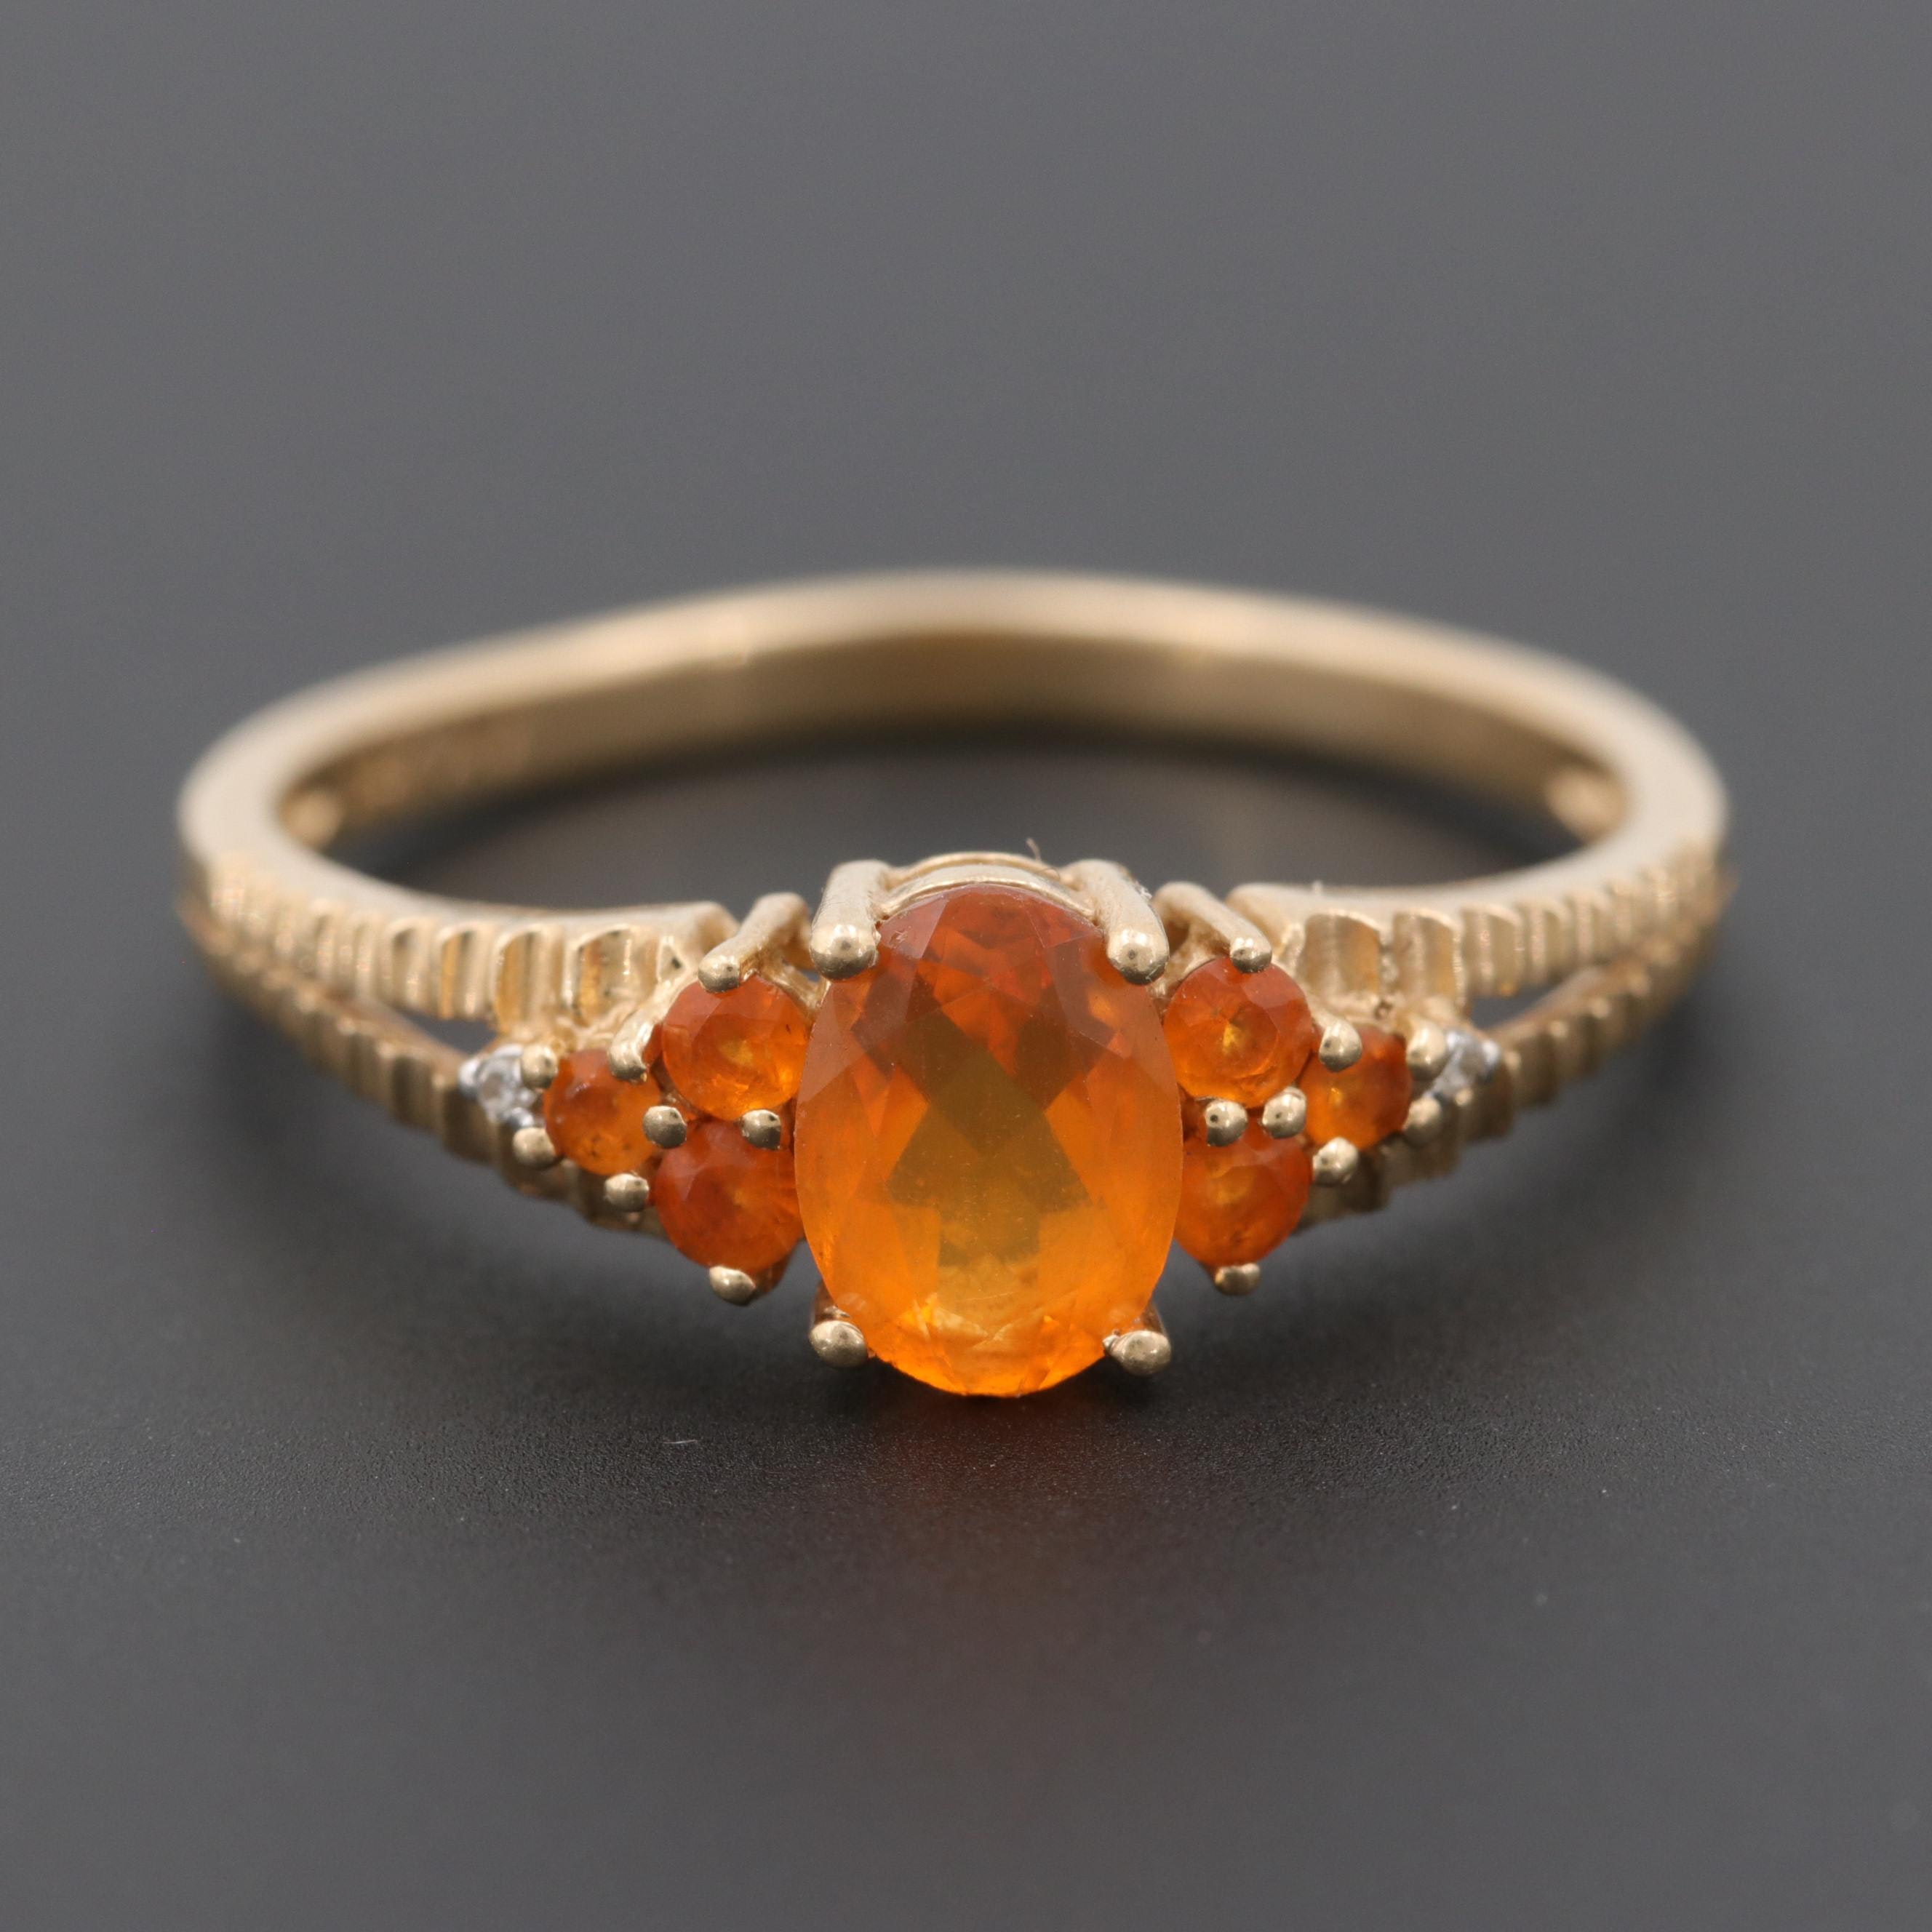 Alwand Vahan 14K Yellow Gold Fire Opal and Diamond Ring